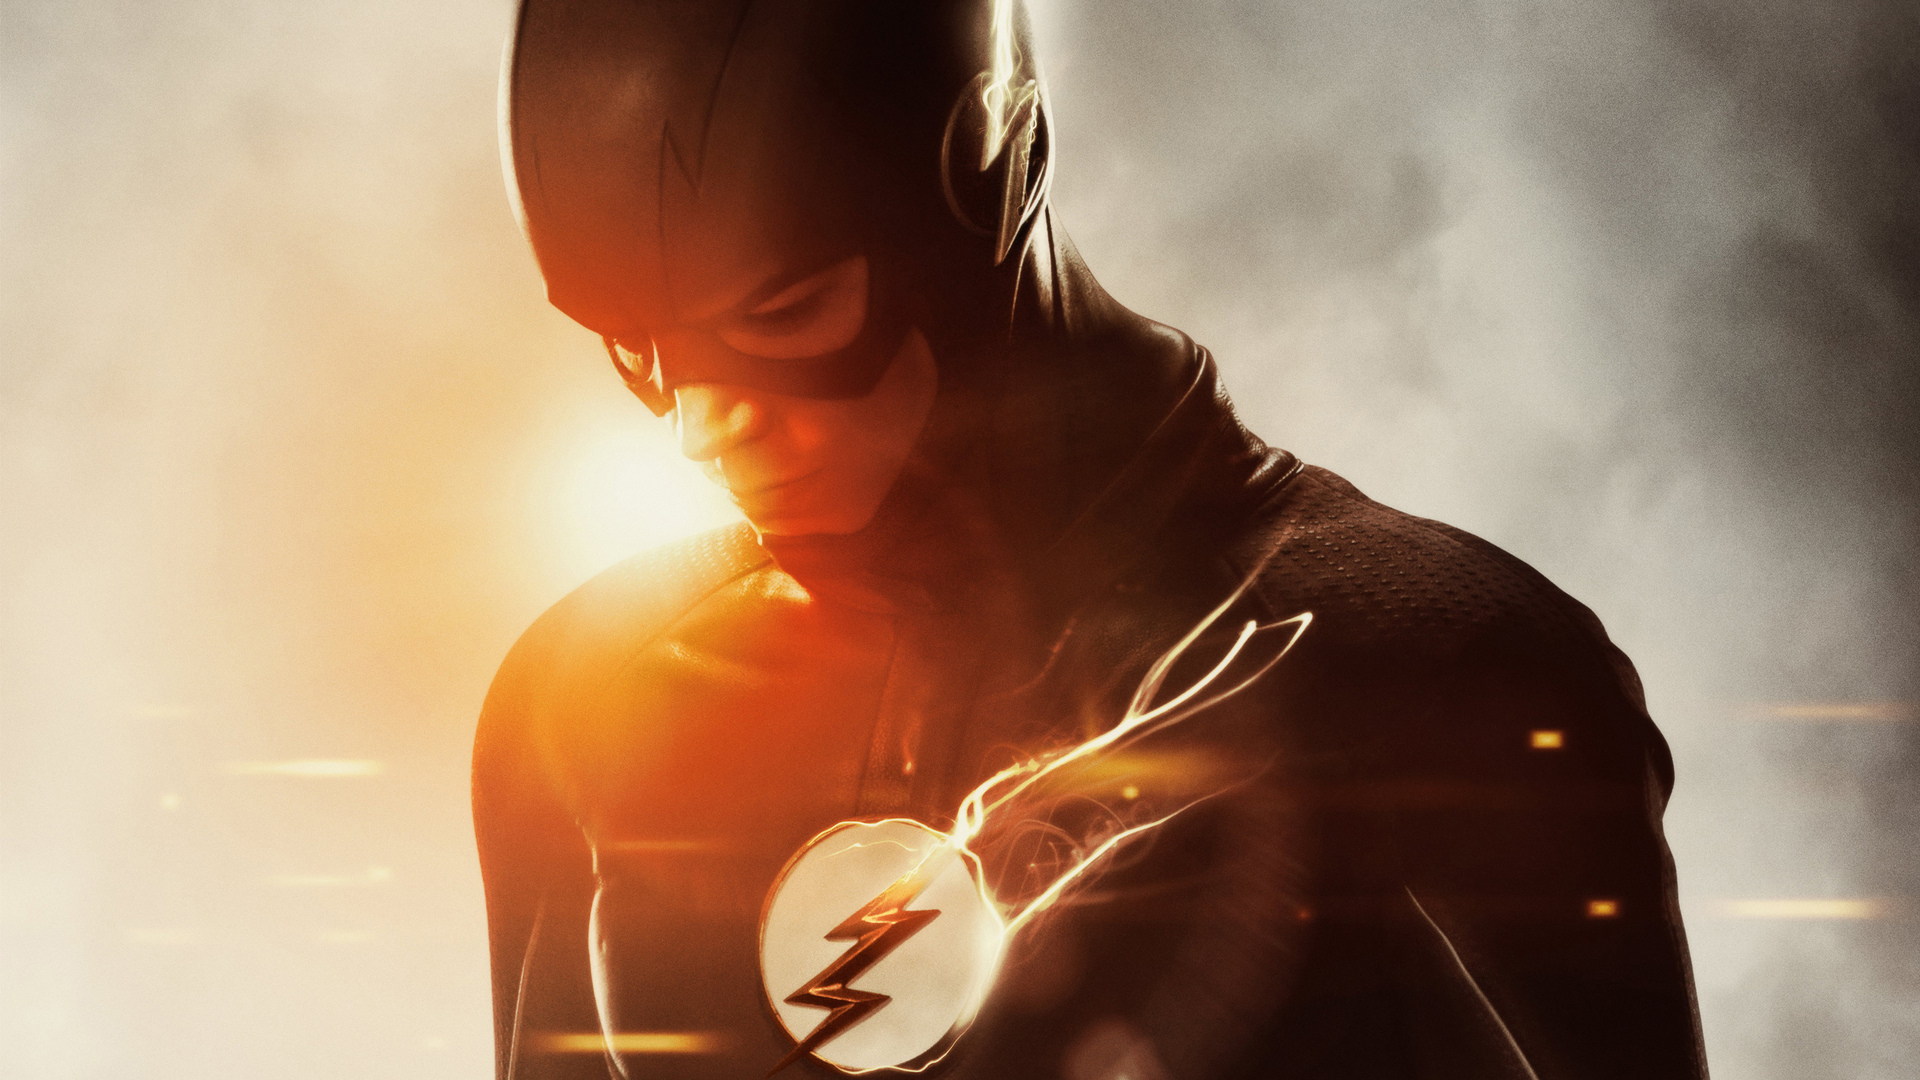 1920x1080 The Flash Laptop Full Hd 1080p Hd 4k Wallpapers Images